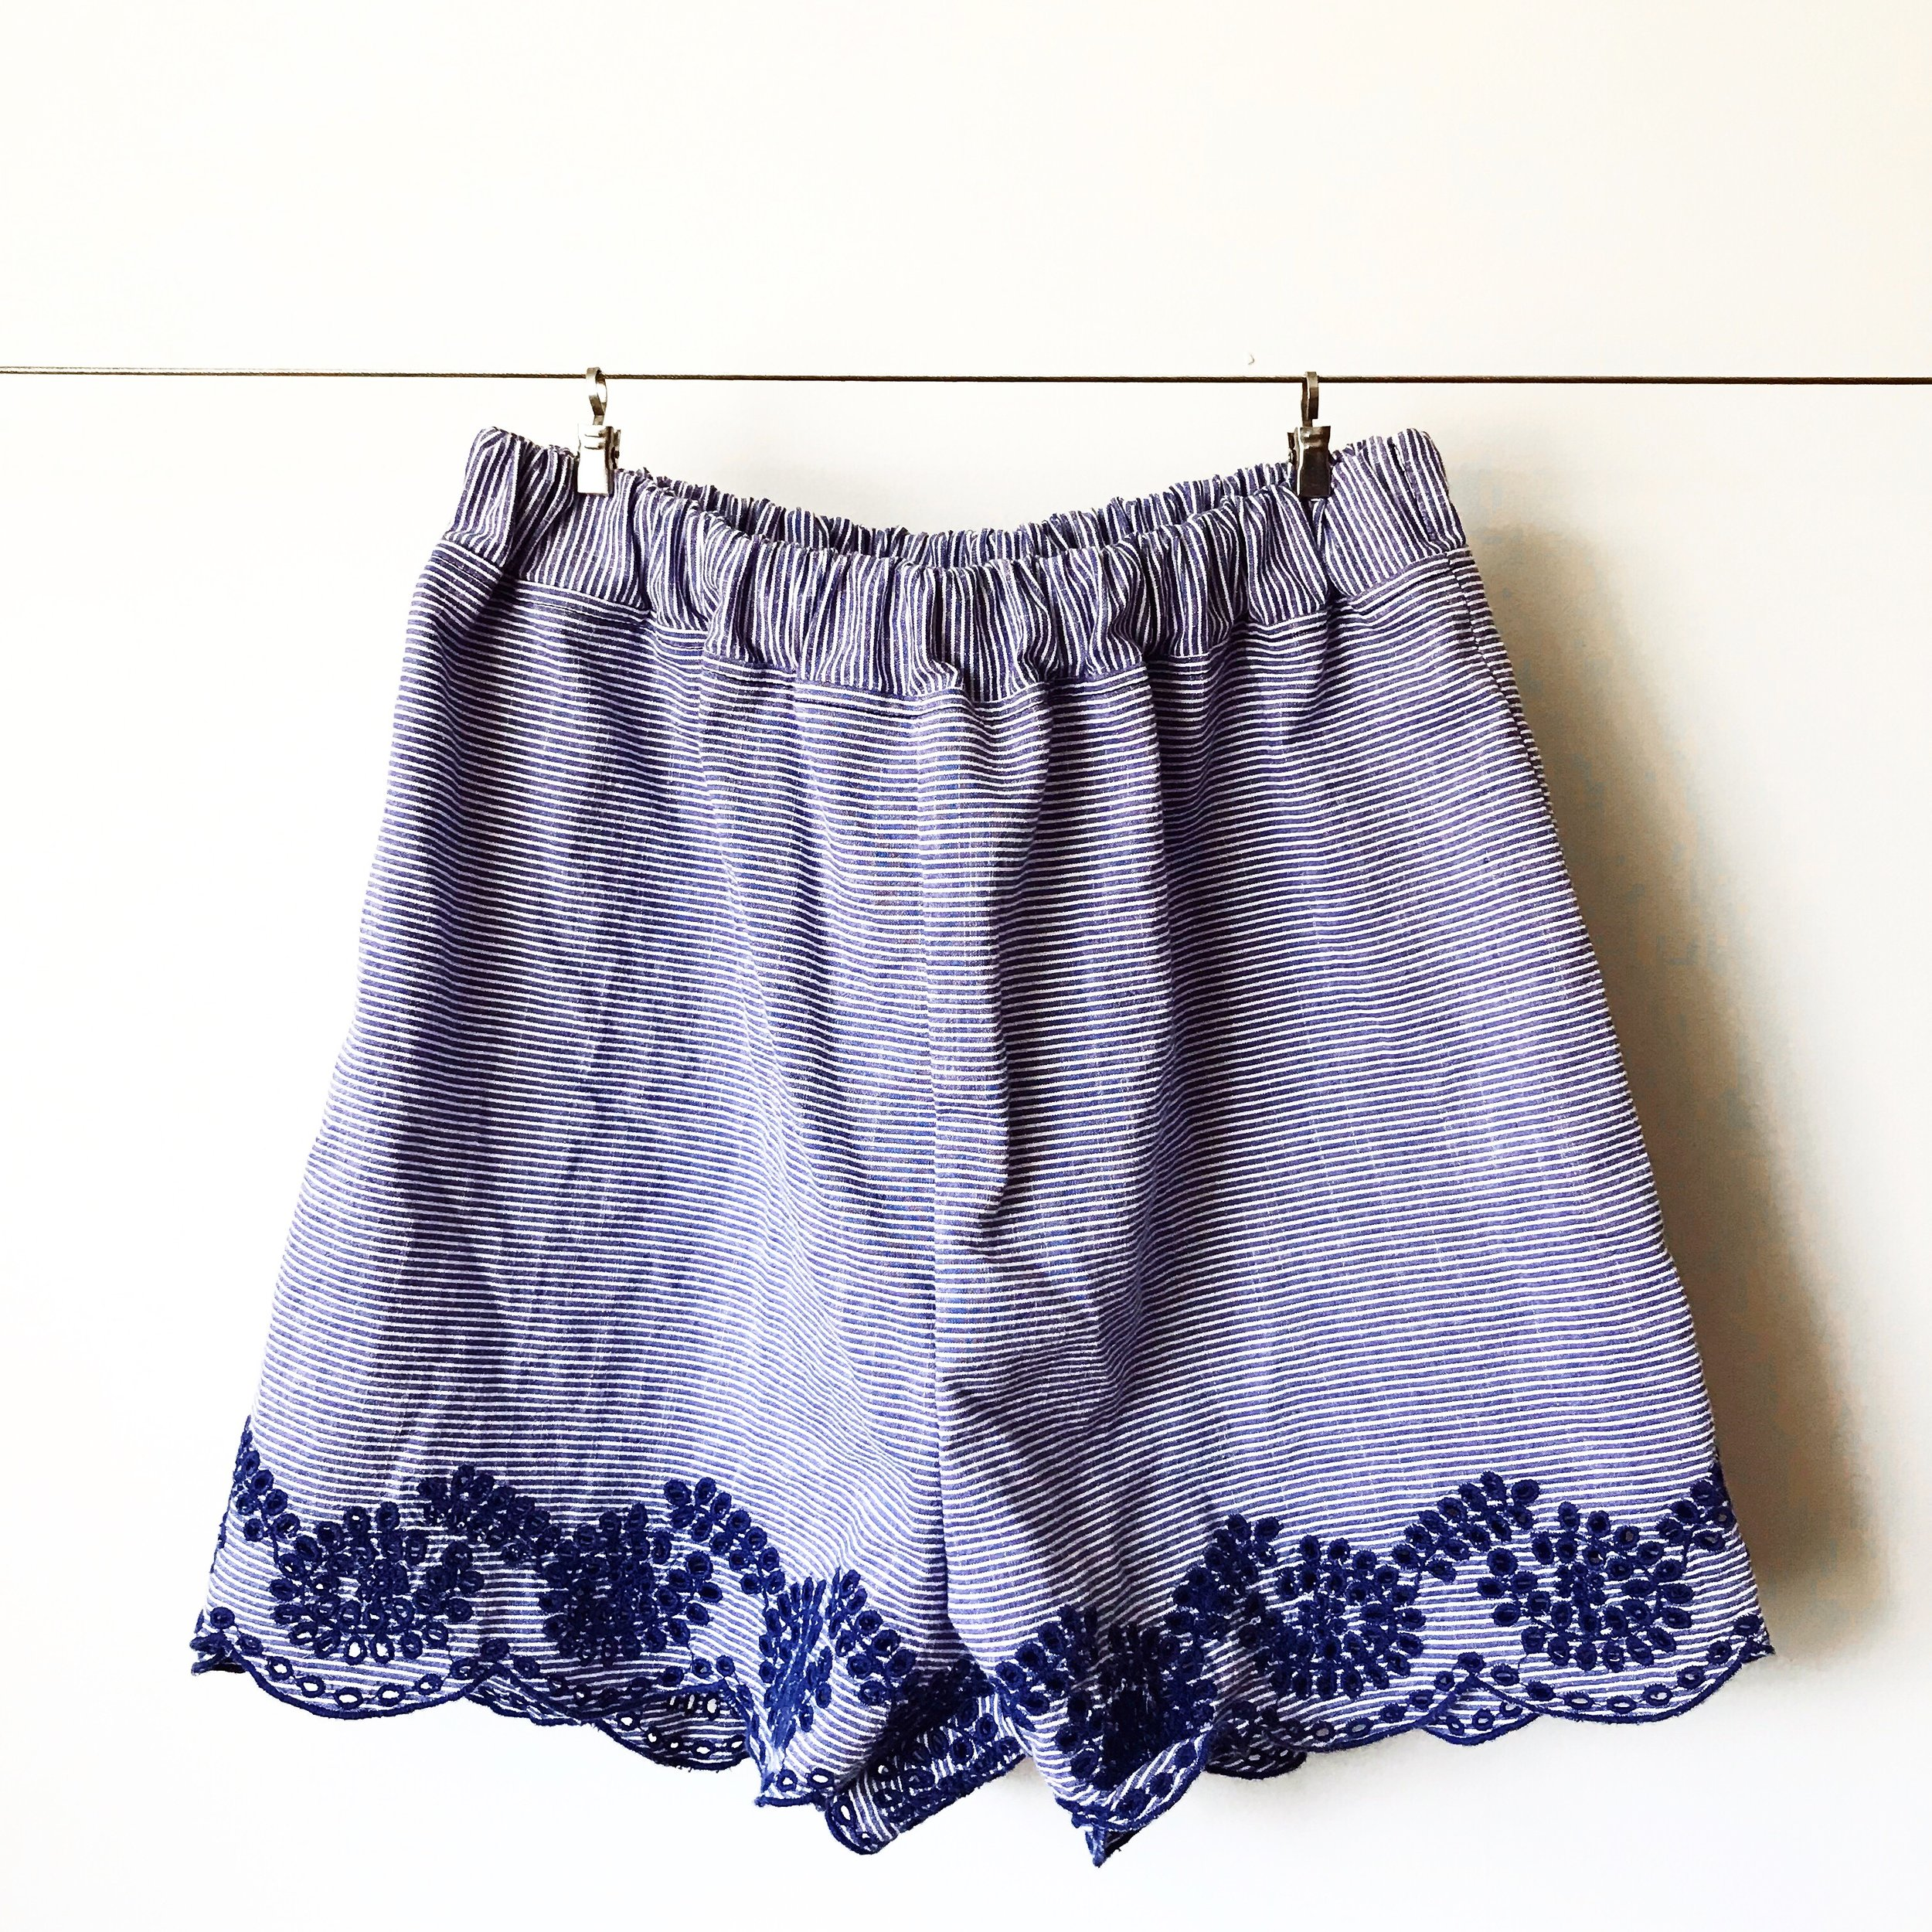 Sew Pajama Shorts with leftover fabrics!